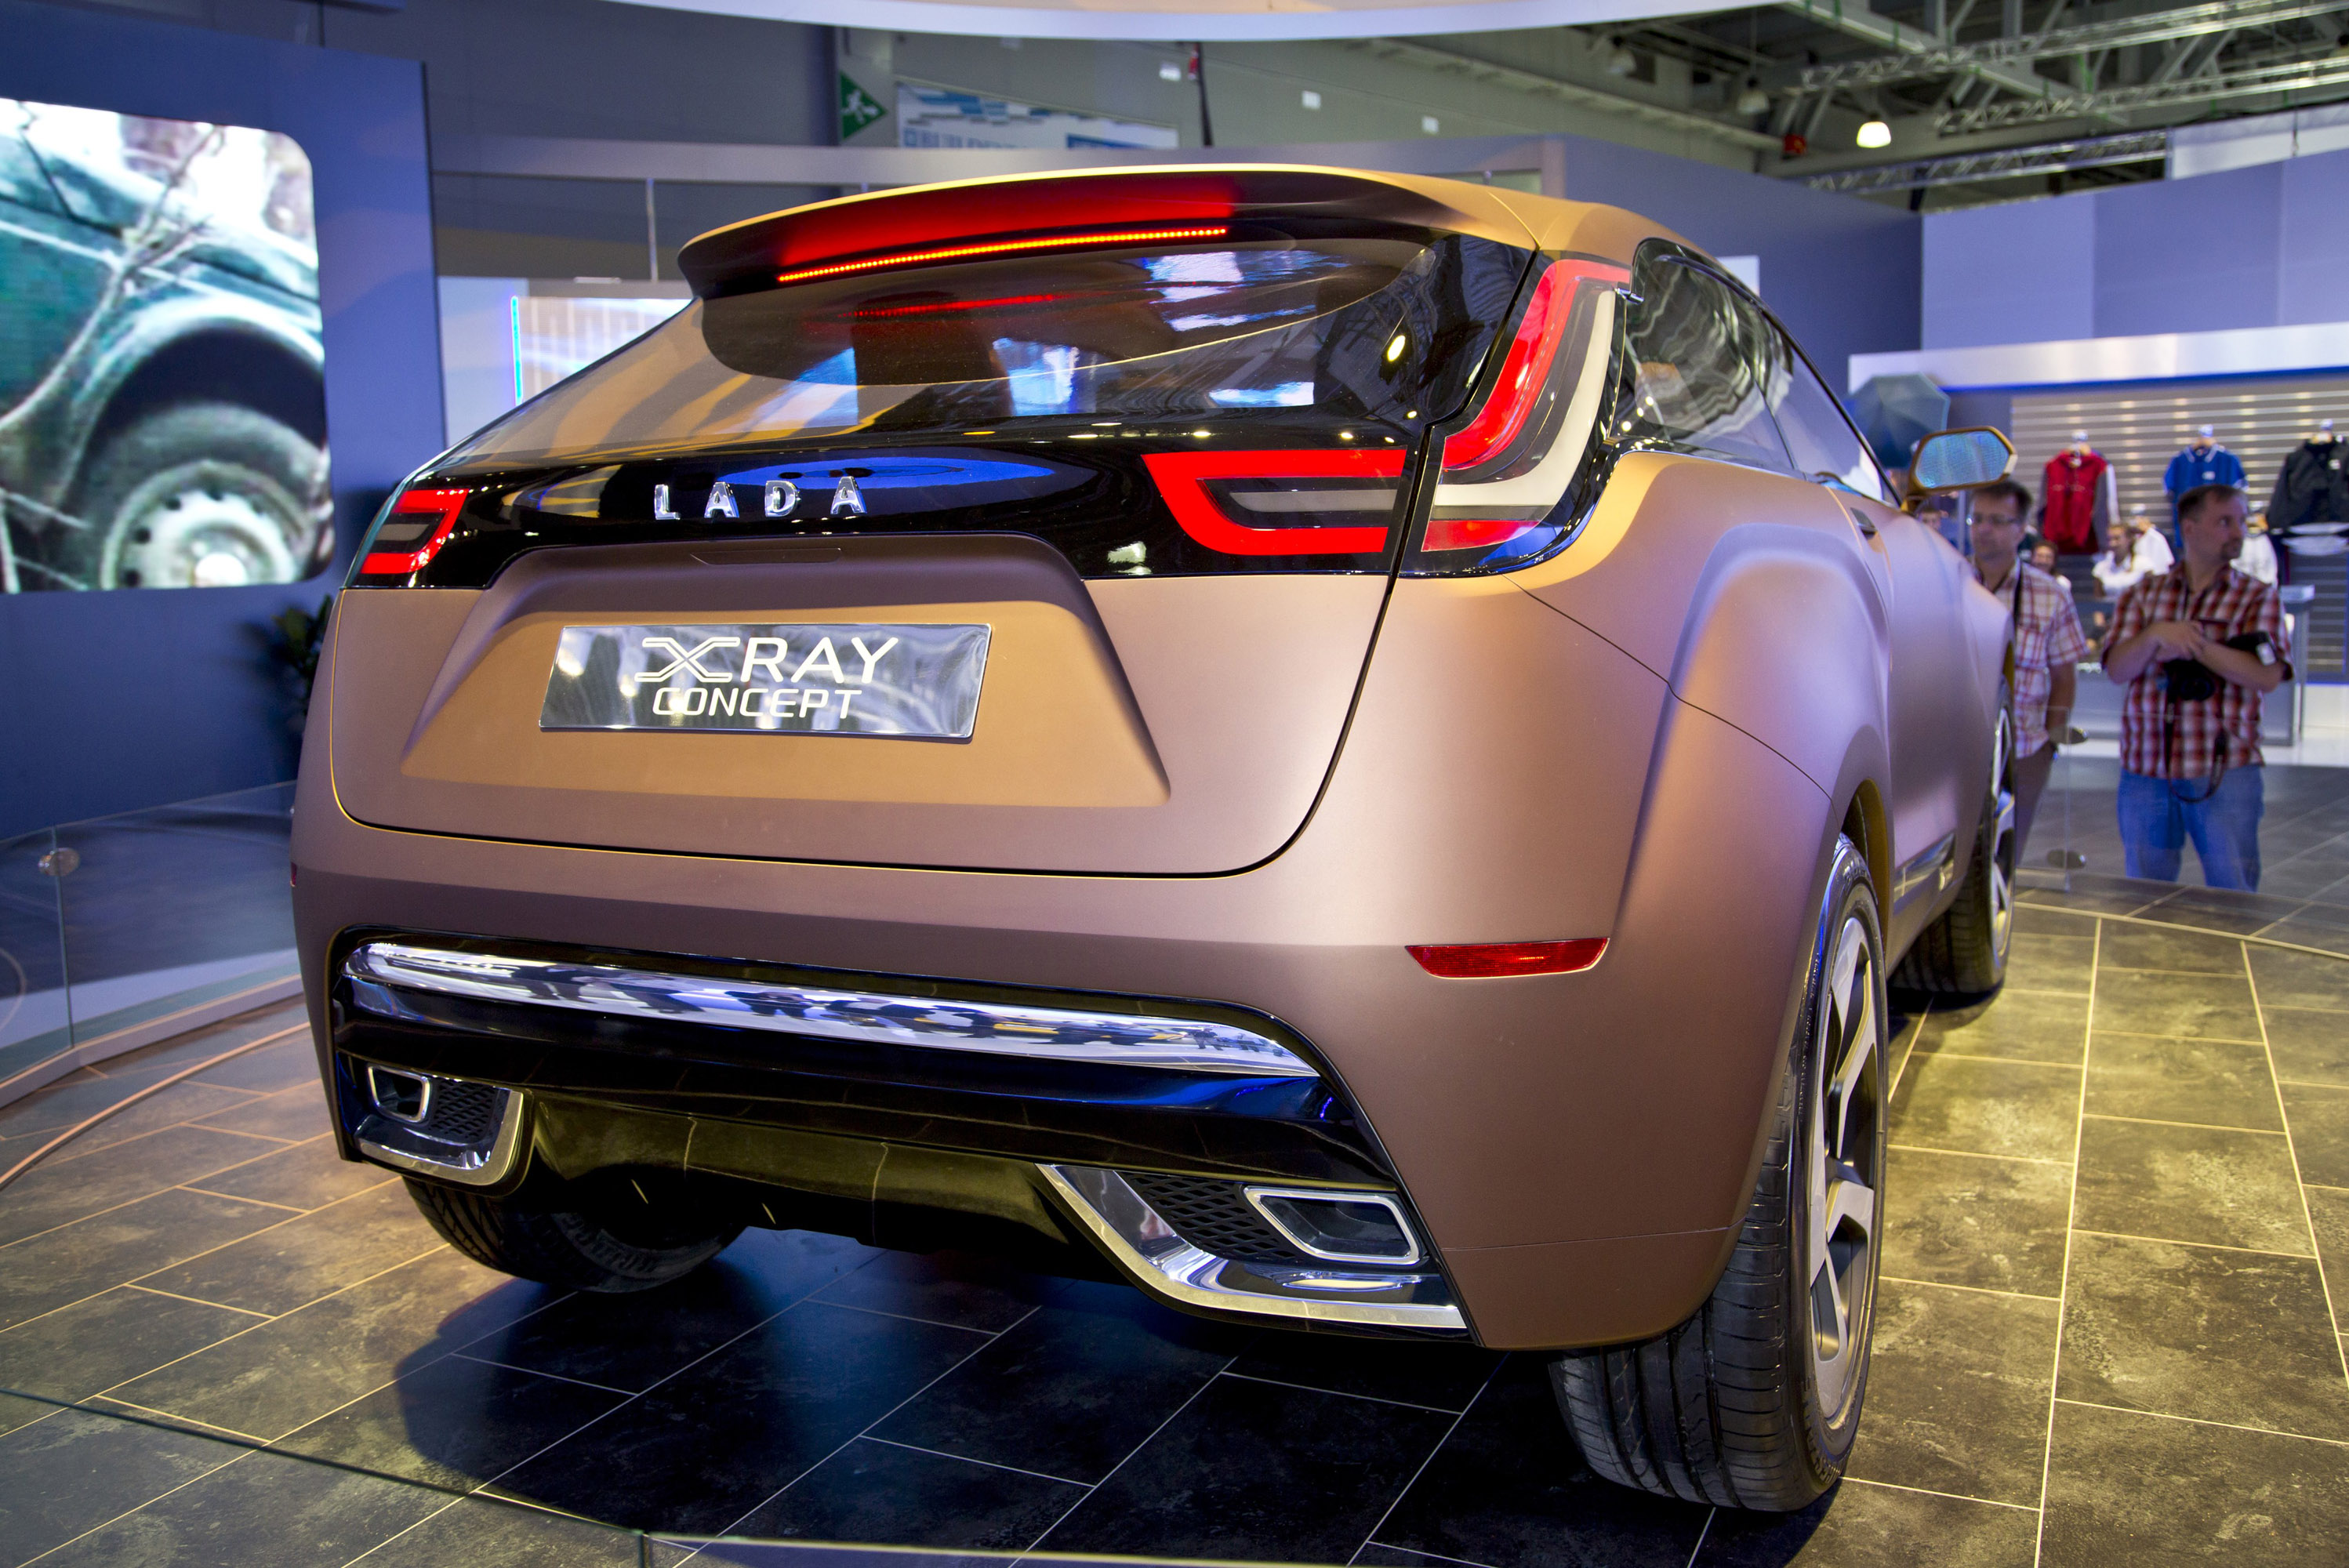 2013 Lada X Ray Concept World Premiere In Moscow Video